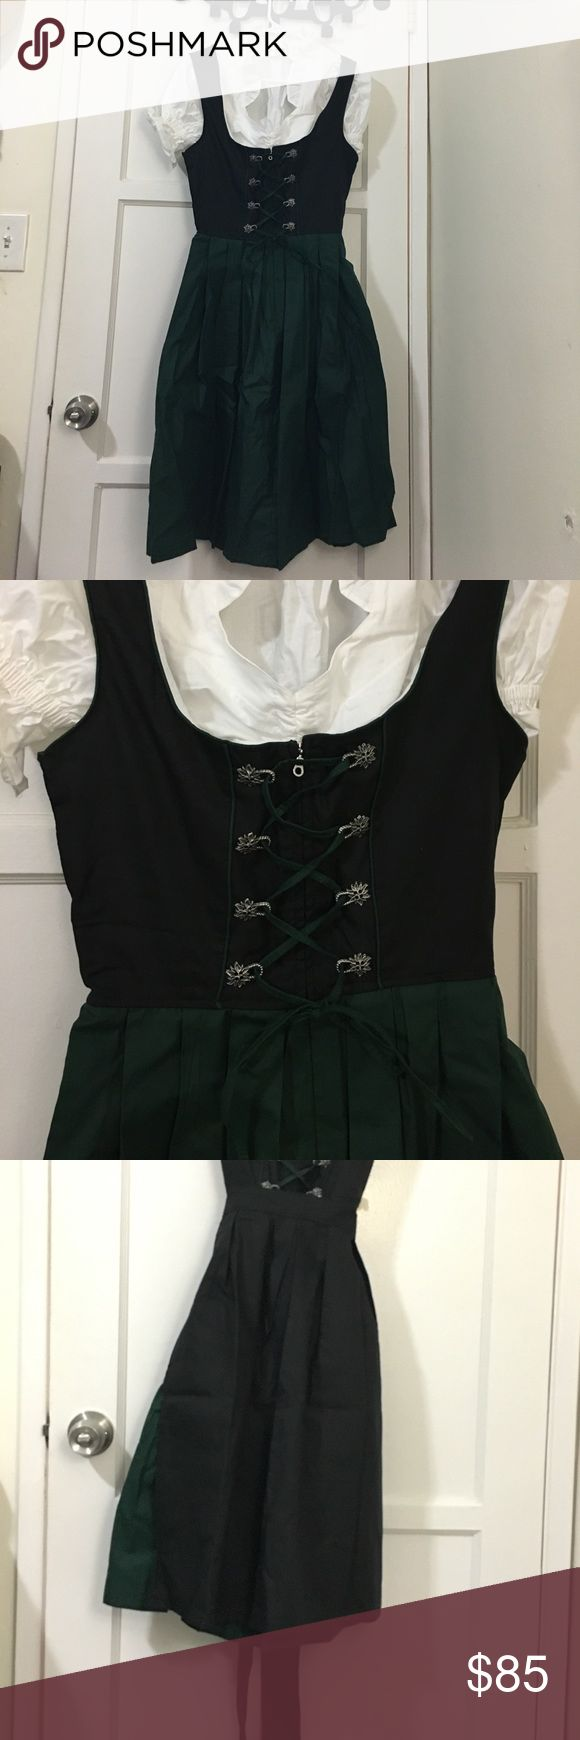 Bavarian women's midi dirndl dress (3 pieces) This is an authentic dirndl dress complete with a blouse and apron straight from Amazon. I opened it, realized it was too large for me, and failed to take it to the tailor in time for my trip to Germany. Because of this, I no longer have any reason to own this dress. Unfortunately I removed the tags, otherwise I would return it, so maybe my derpy mistake can save you a little $$$. This thing is brand spankin' new and can't wait to help you…